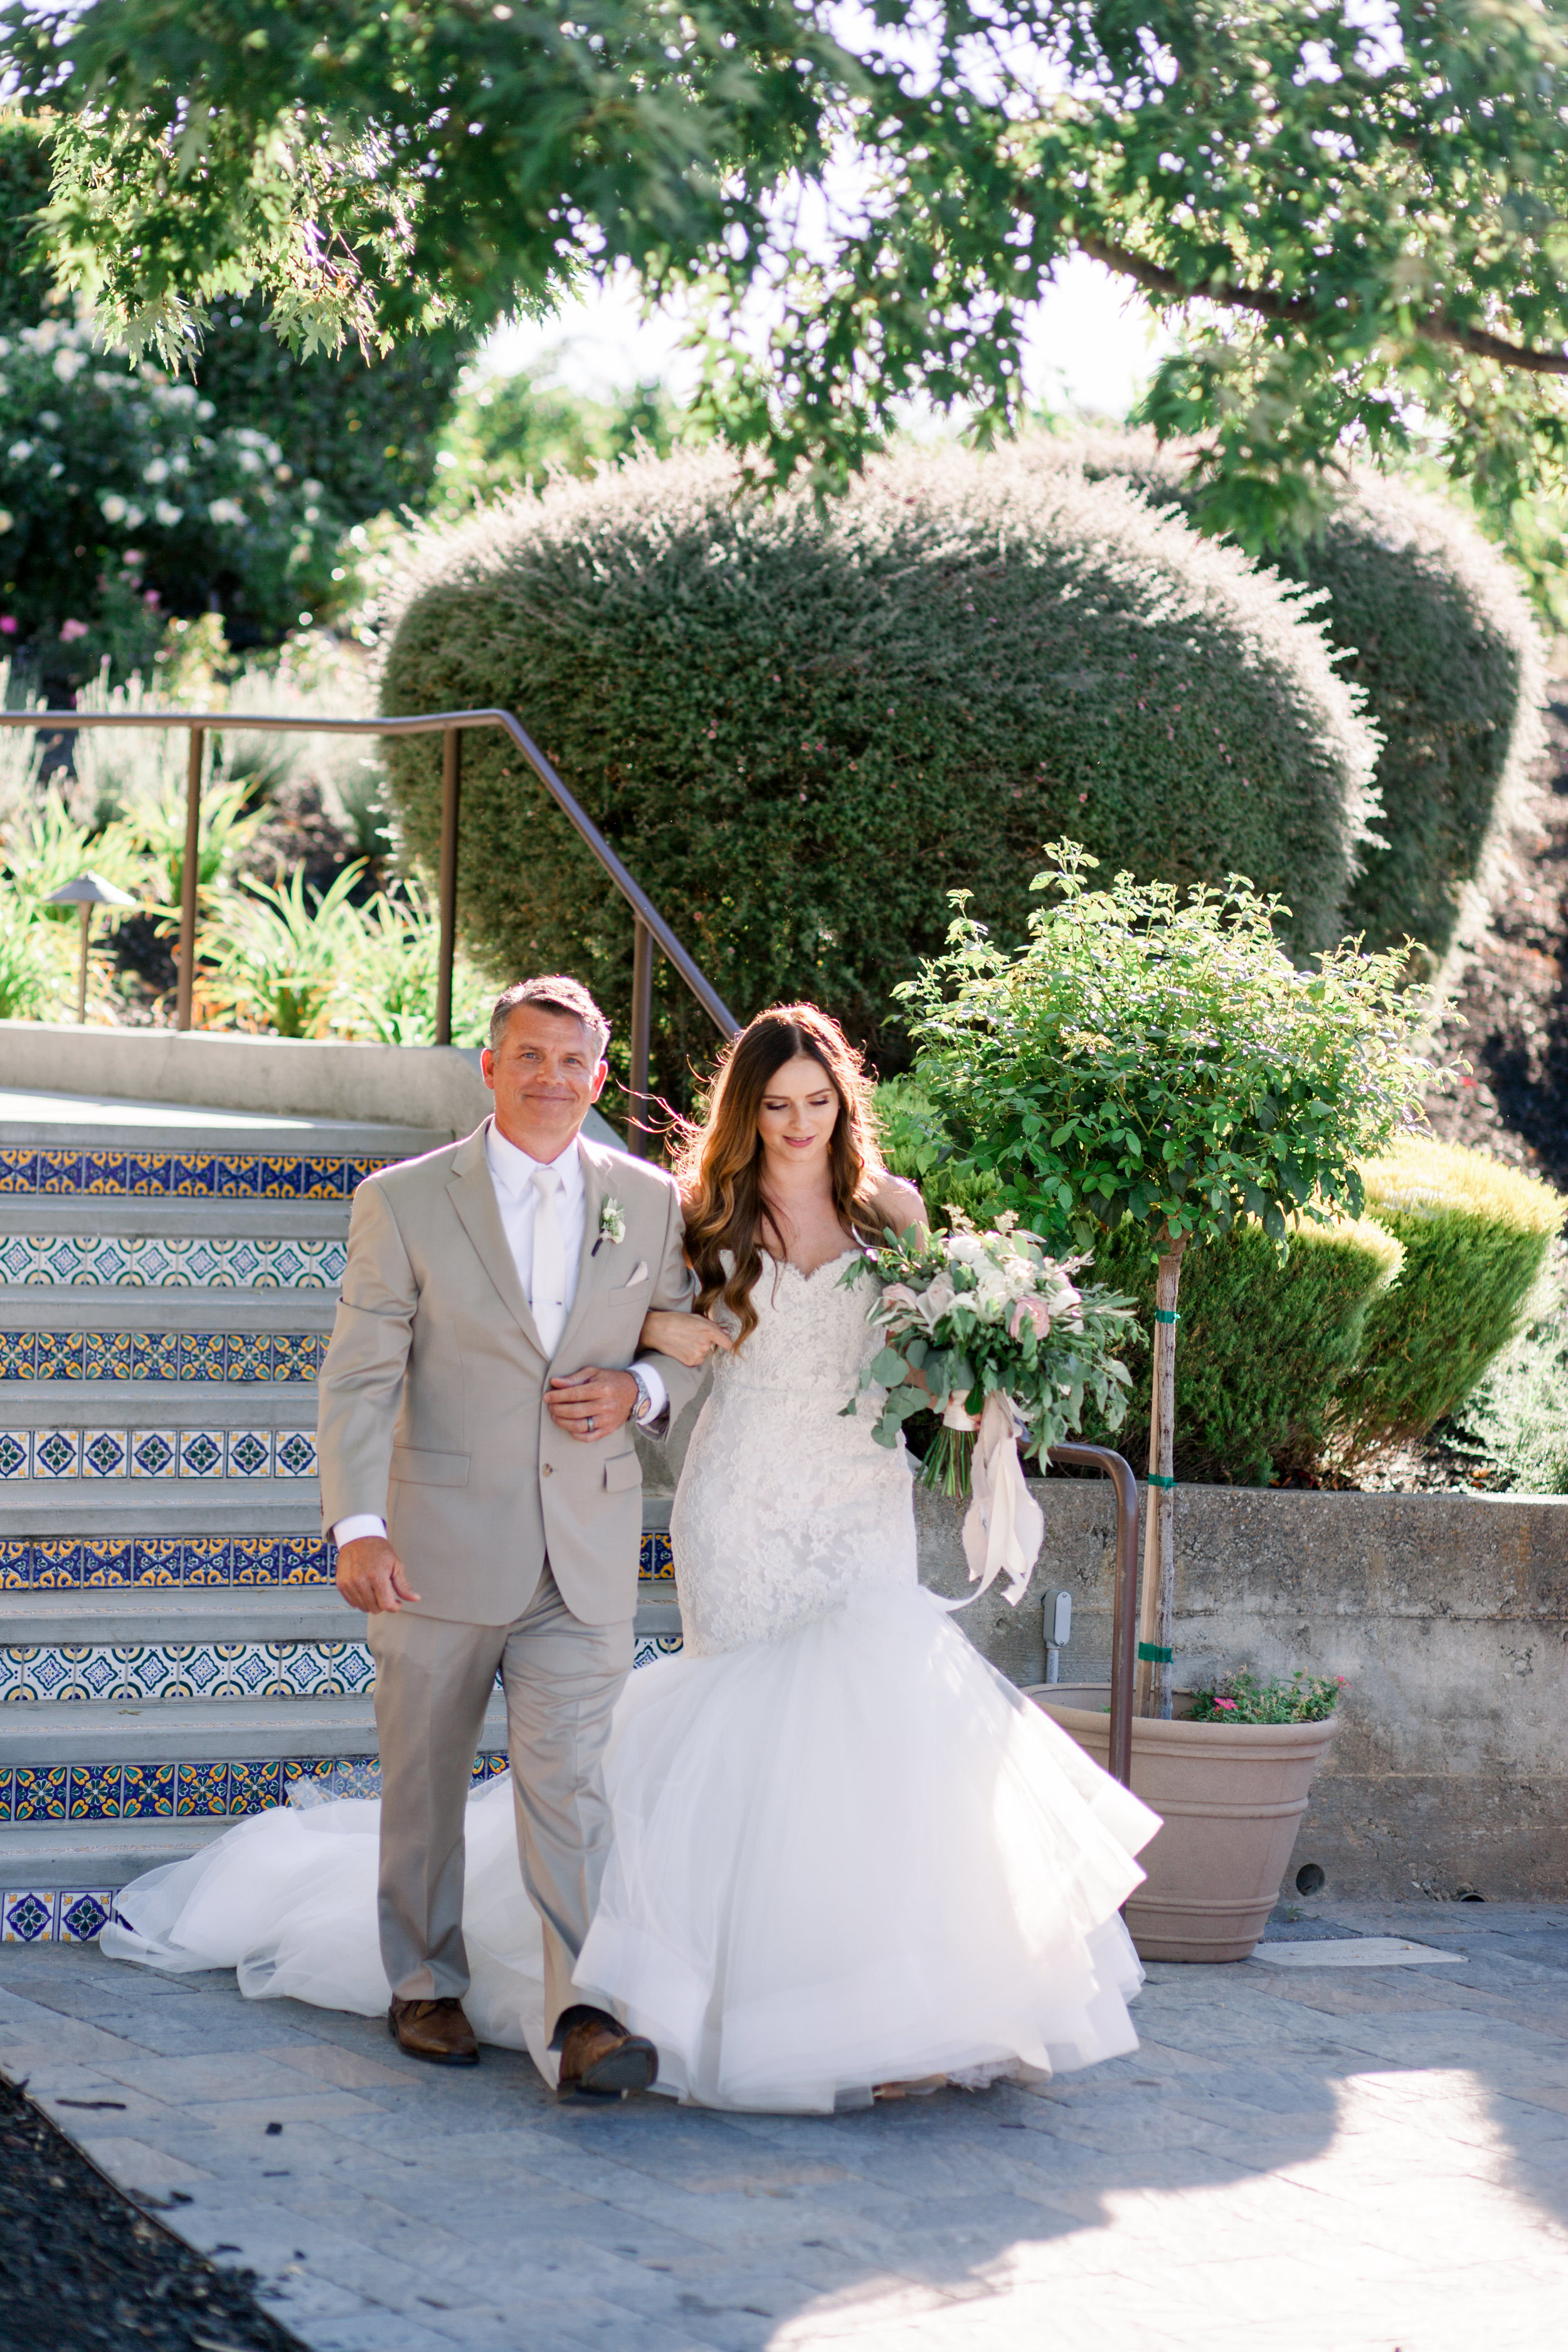 muriettas-well-wedding-in-livermore-california-23.jpg